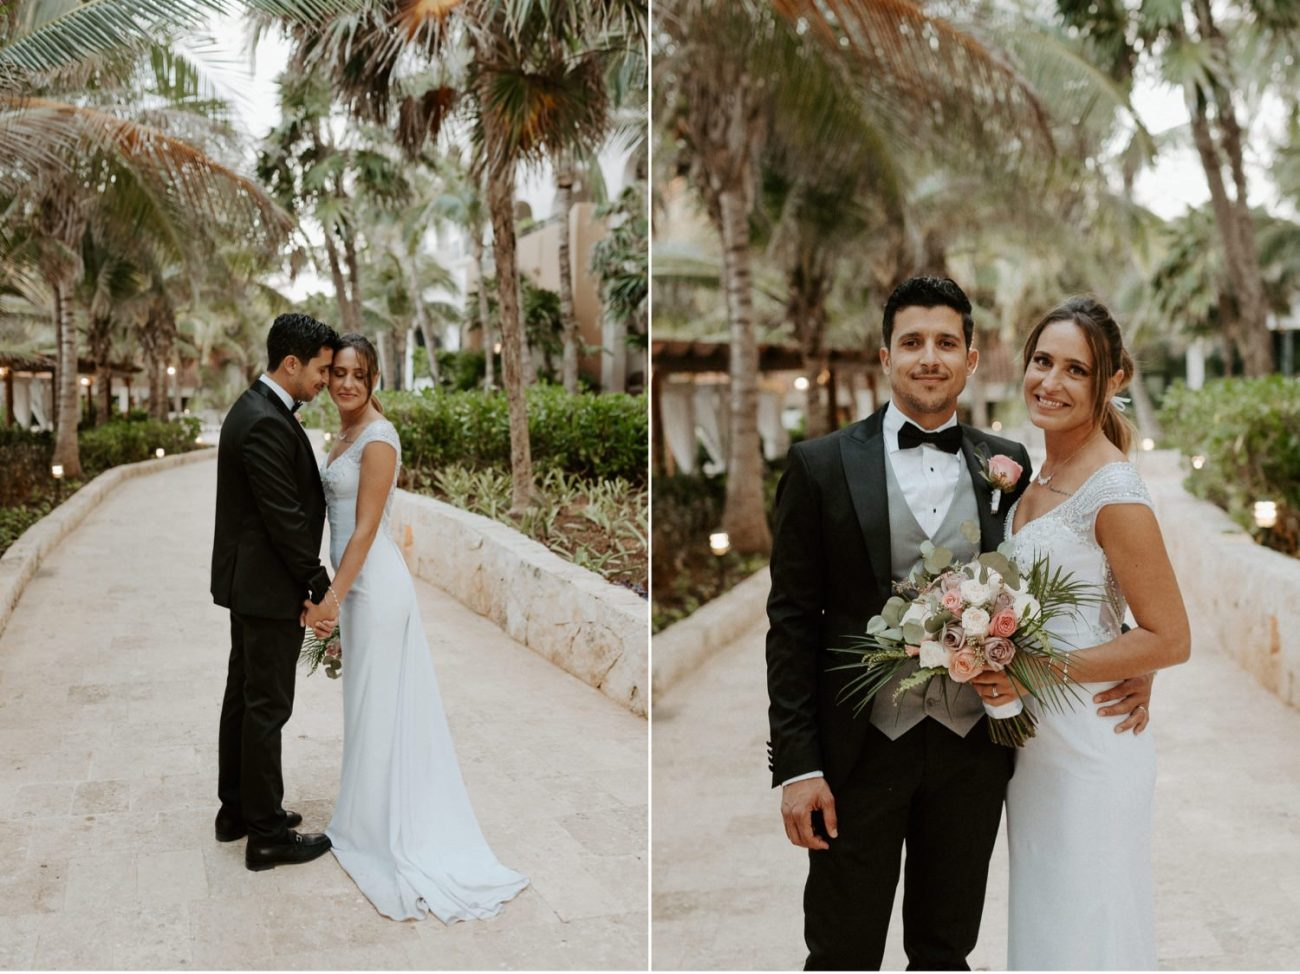 Cancun Destination Wedding Mexico Tulum Wedding Photographer Anais Possamai Photography 054